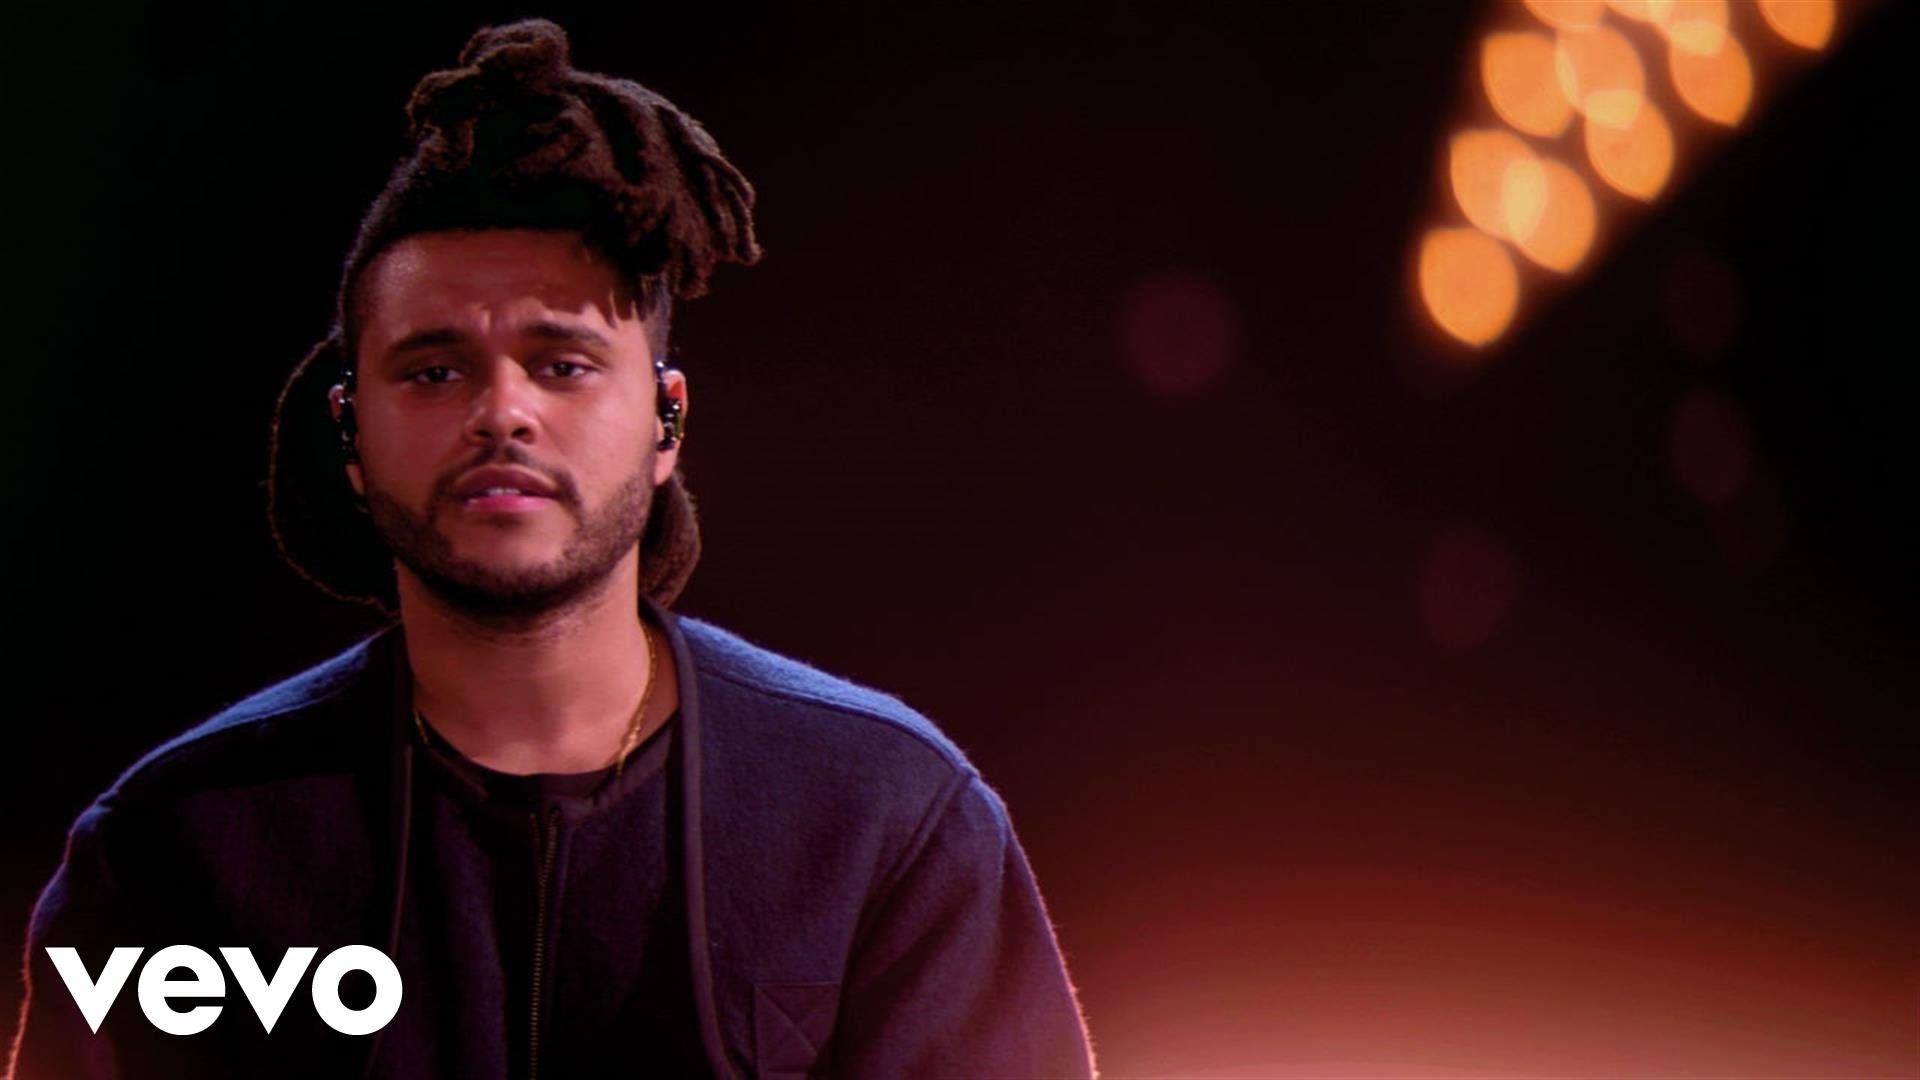 The Weeknd – Can't Feel My Face (Live From The Victoria's Secret 2015  Fashion Show) – YouTube